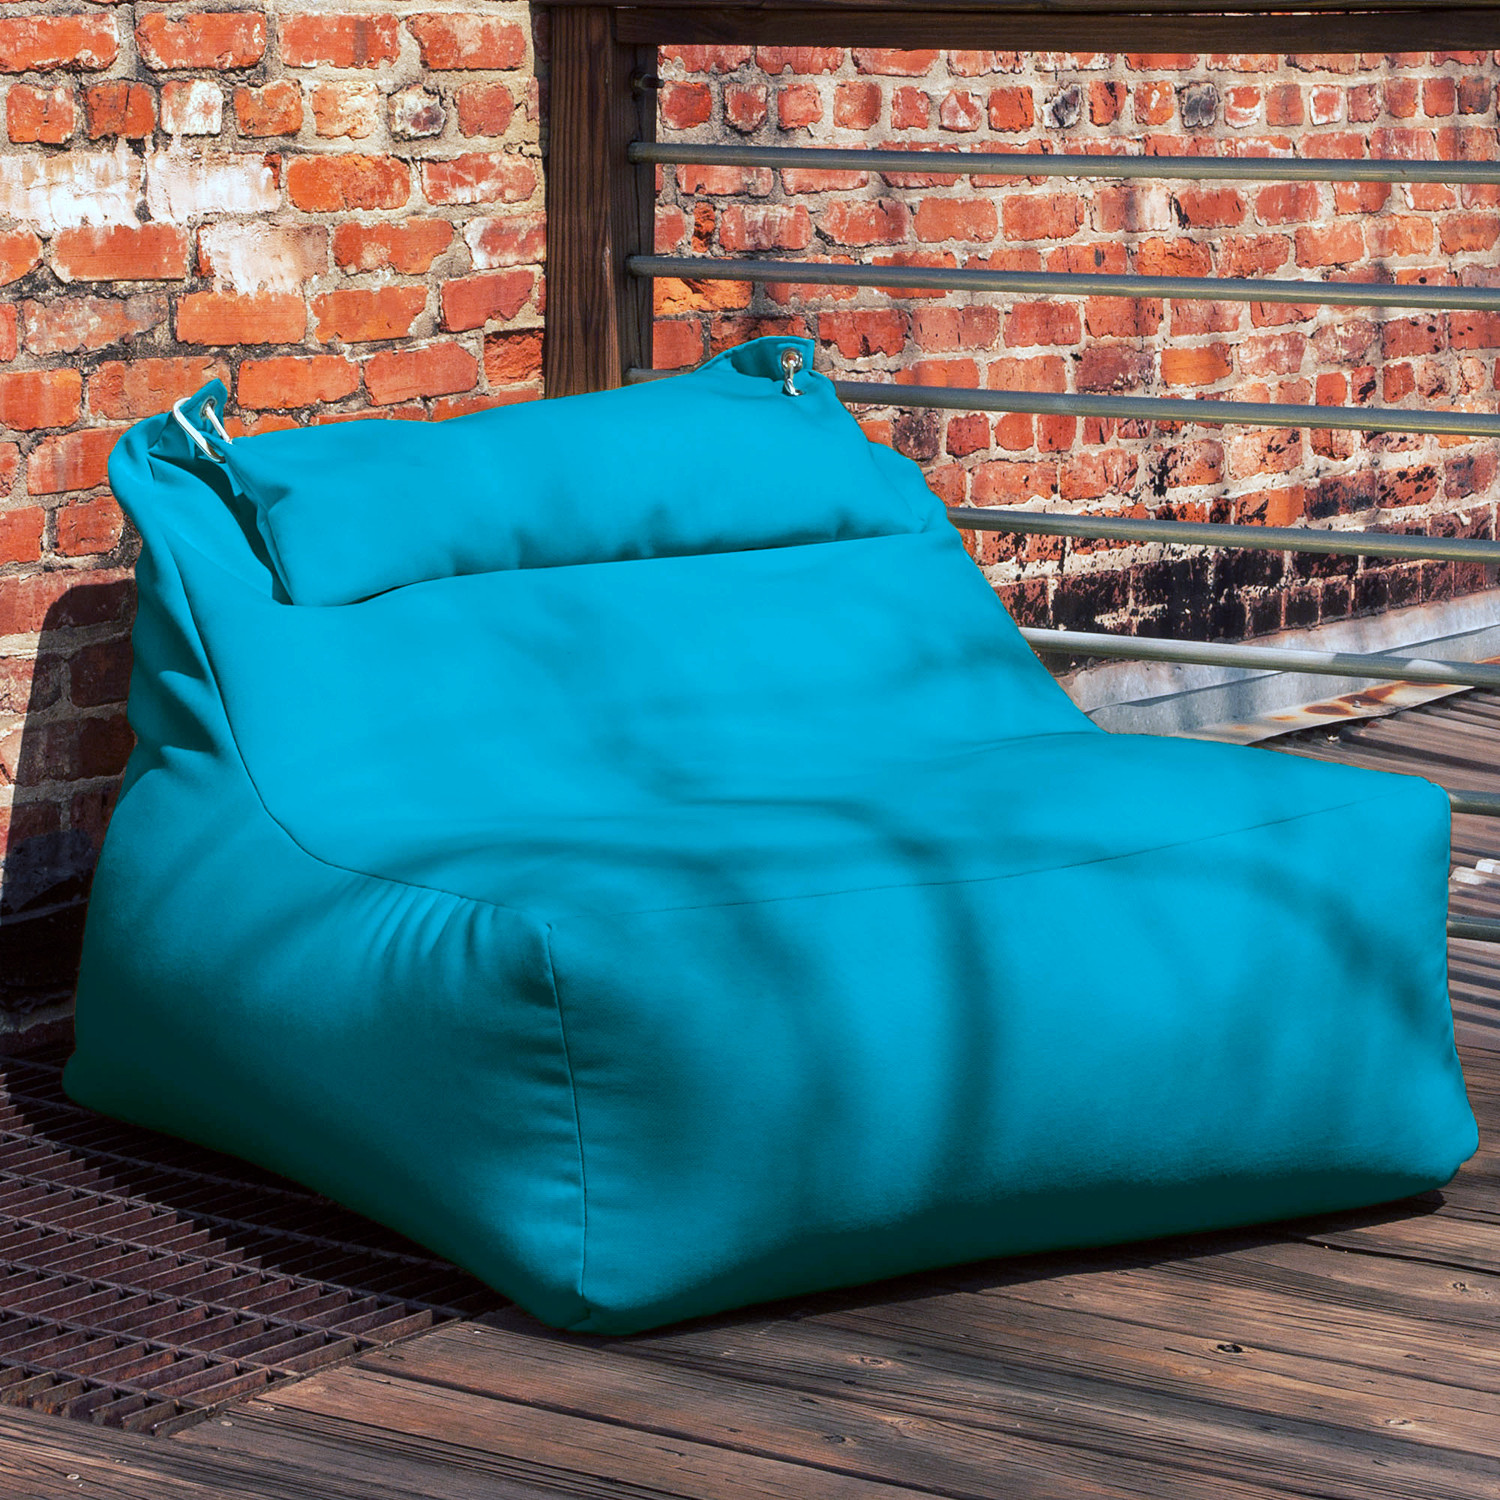 Ponce Outdoor Bean Bag Lounger Aqua Jaxx Outdoor Touch of Modern